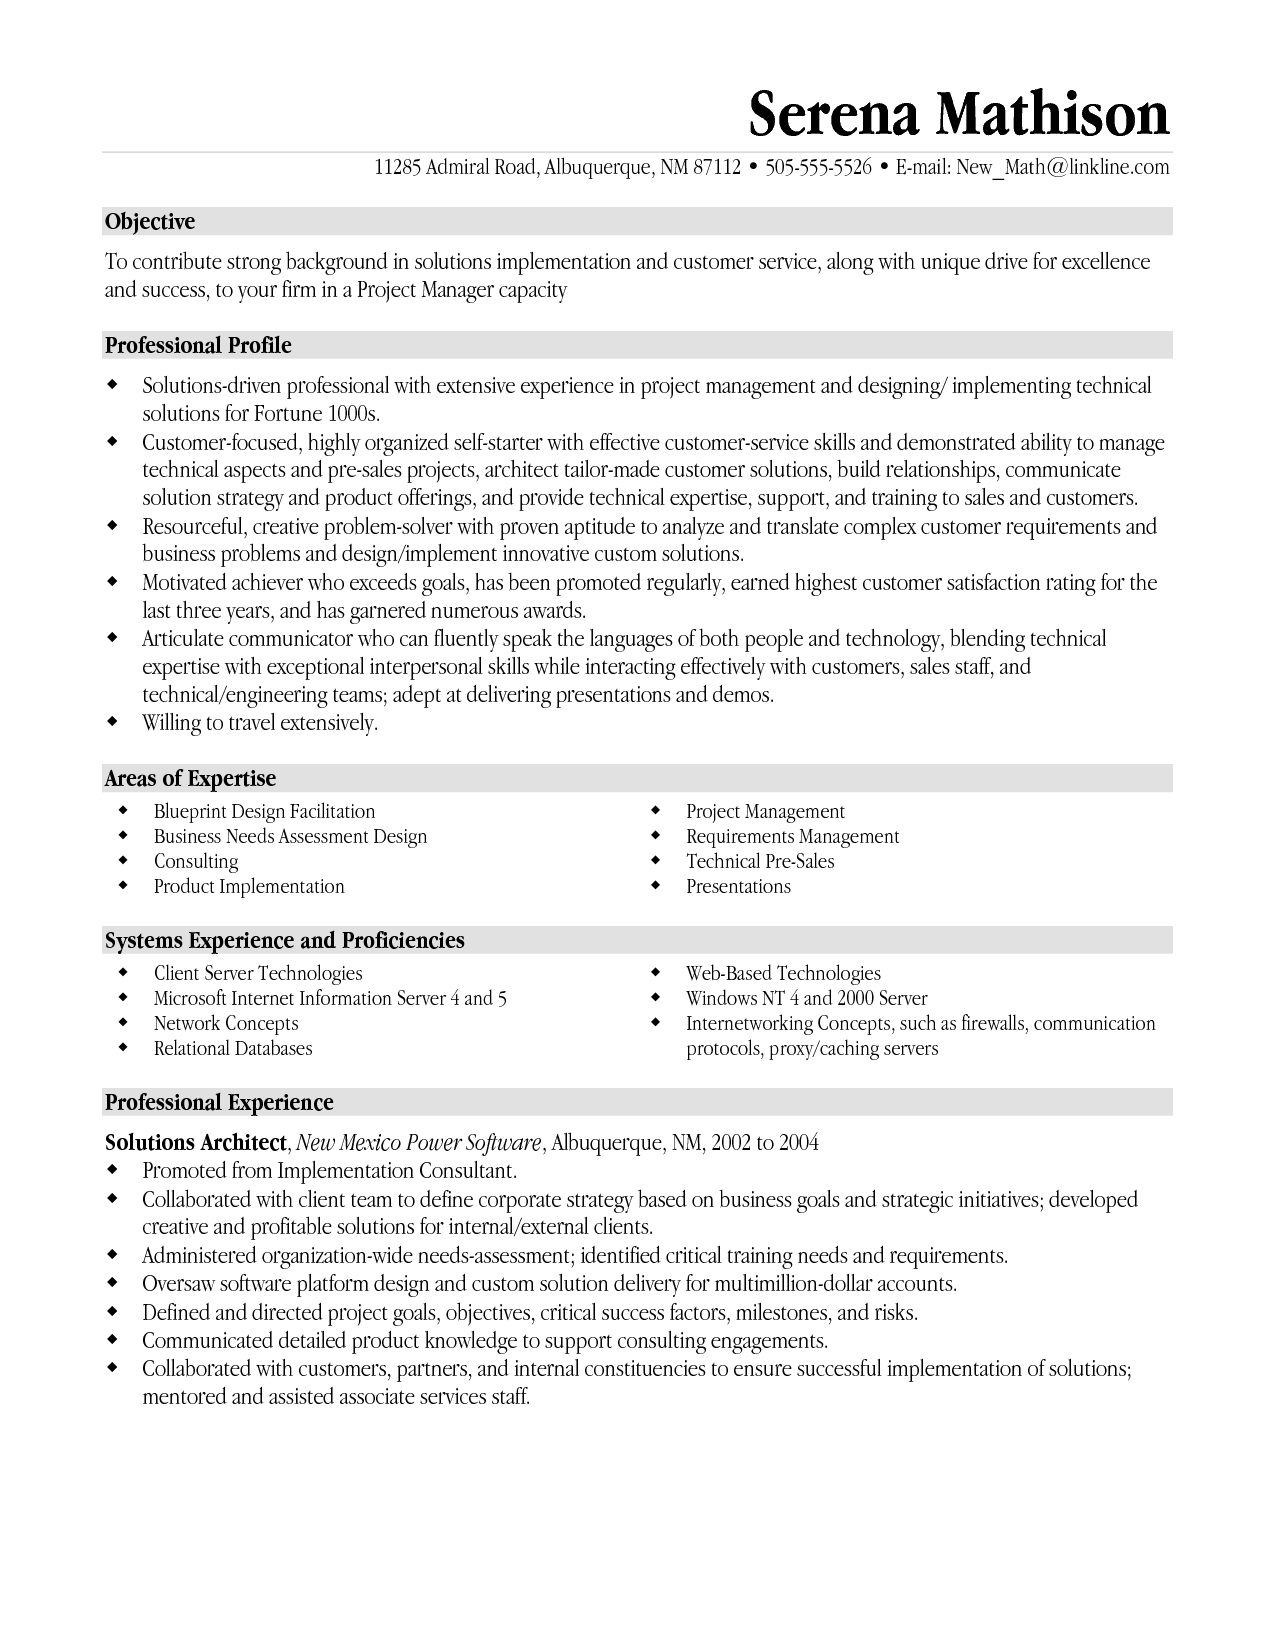 sahm resume sample cover letter for stay at home mom functional ...